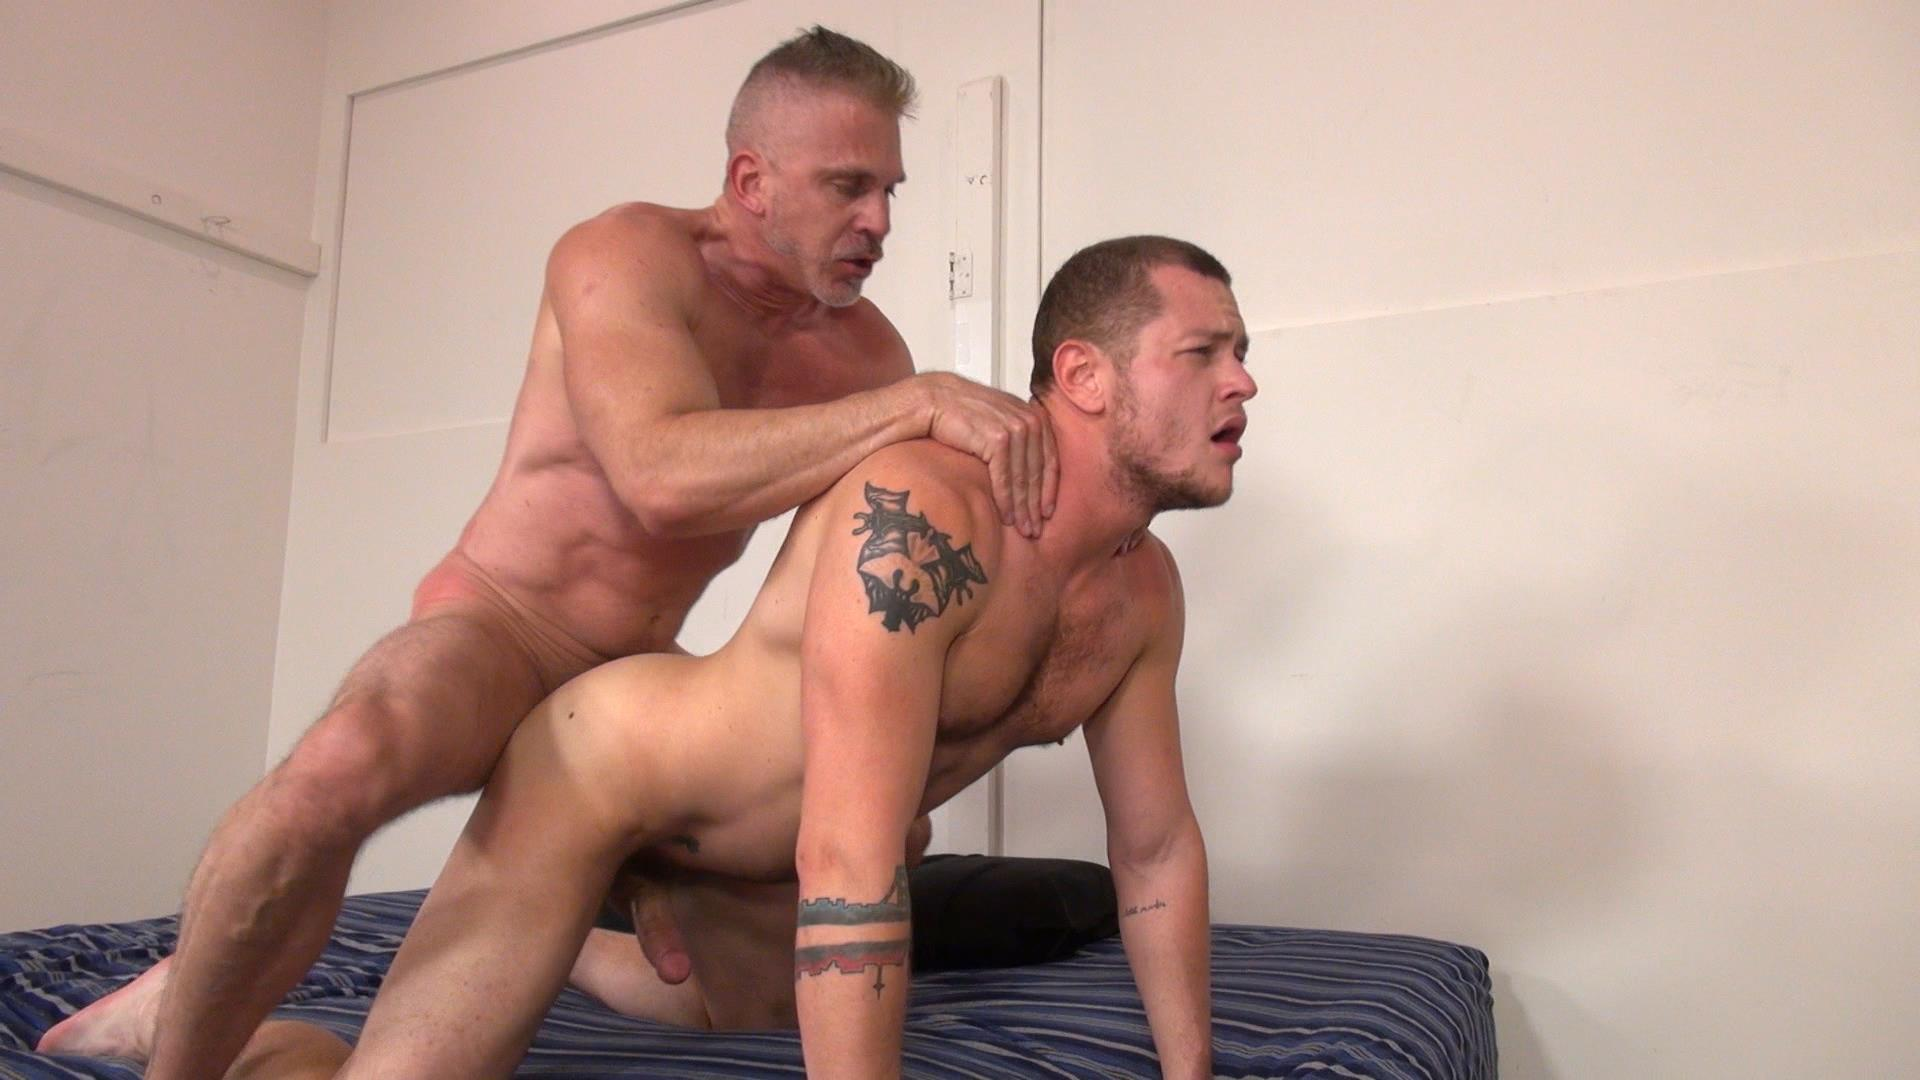 Raw and Rough Sam Dixon and Blue Bailey Daddy And Boy Flip Flip Bareback Fucking Amateur Gay Porn 05 Blue Bailey Flip Flop Barebacking With A Hung Daddy